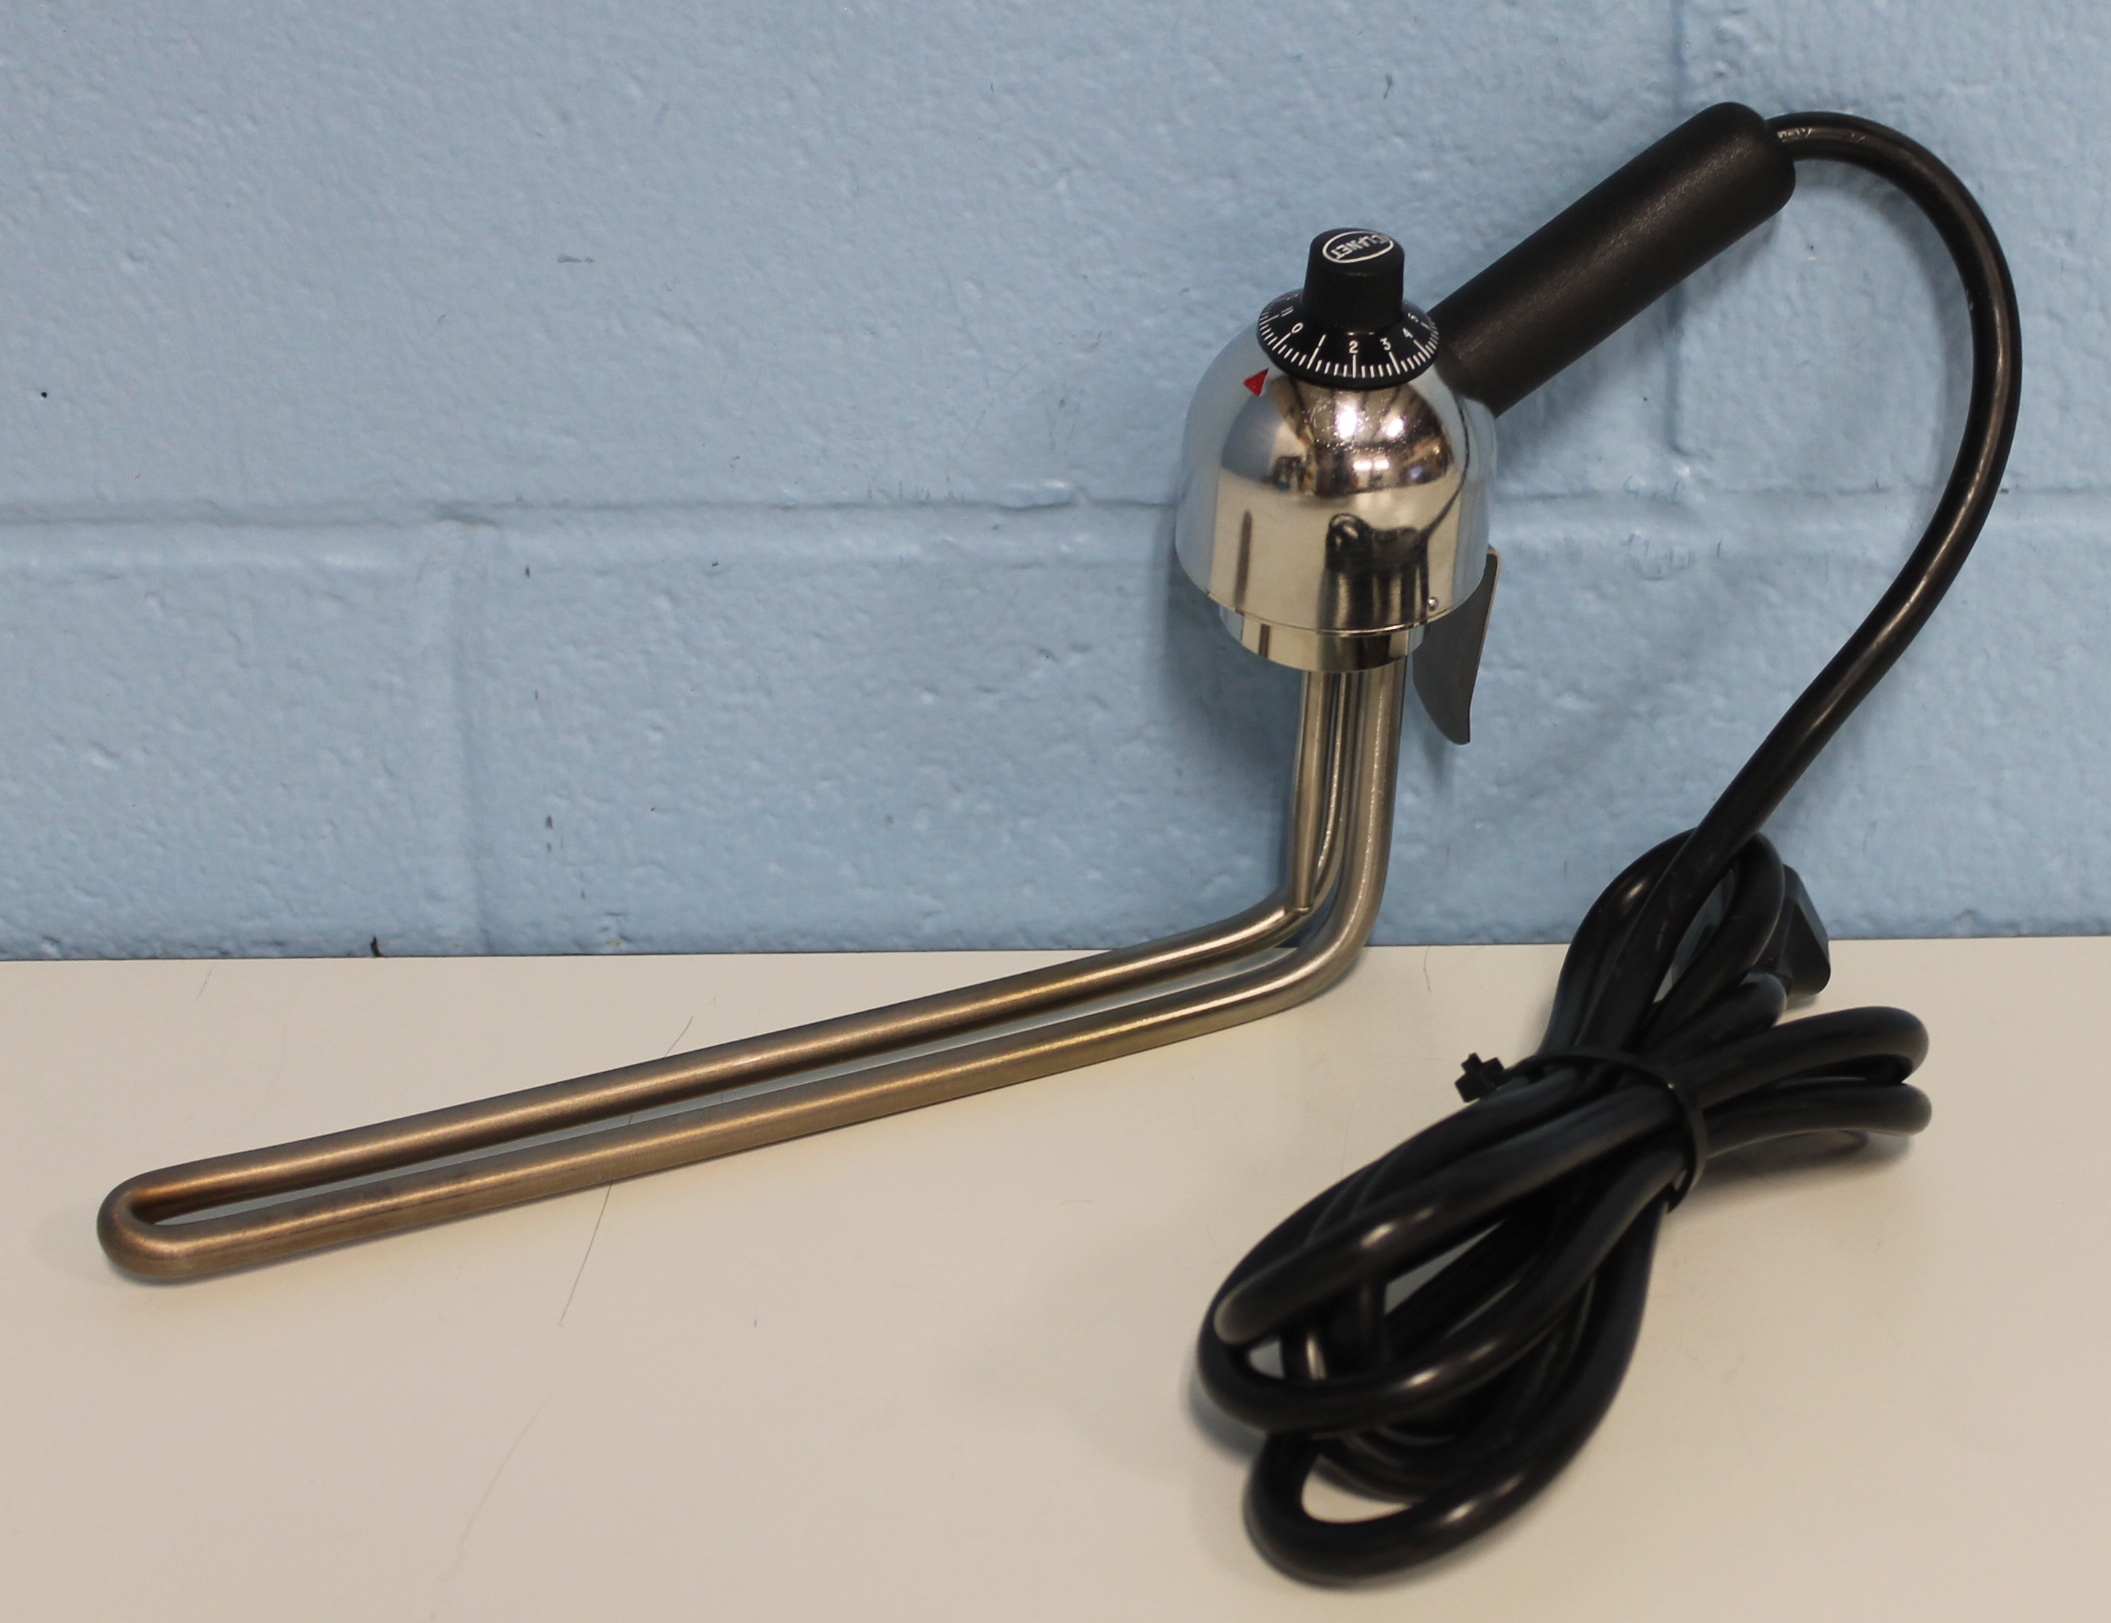 George Ulanet Company Over the Side Immersion Heater, Heet-o-Matic  Image